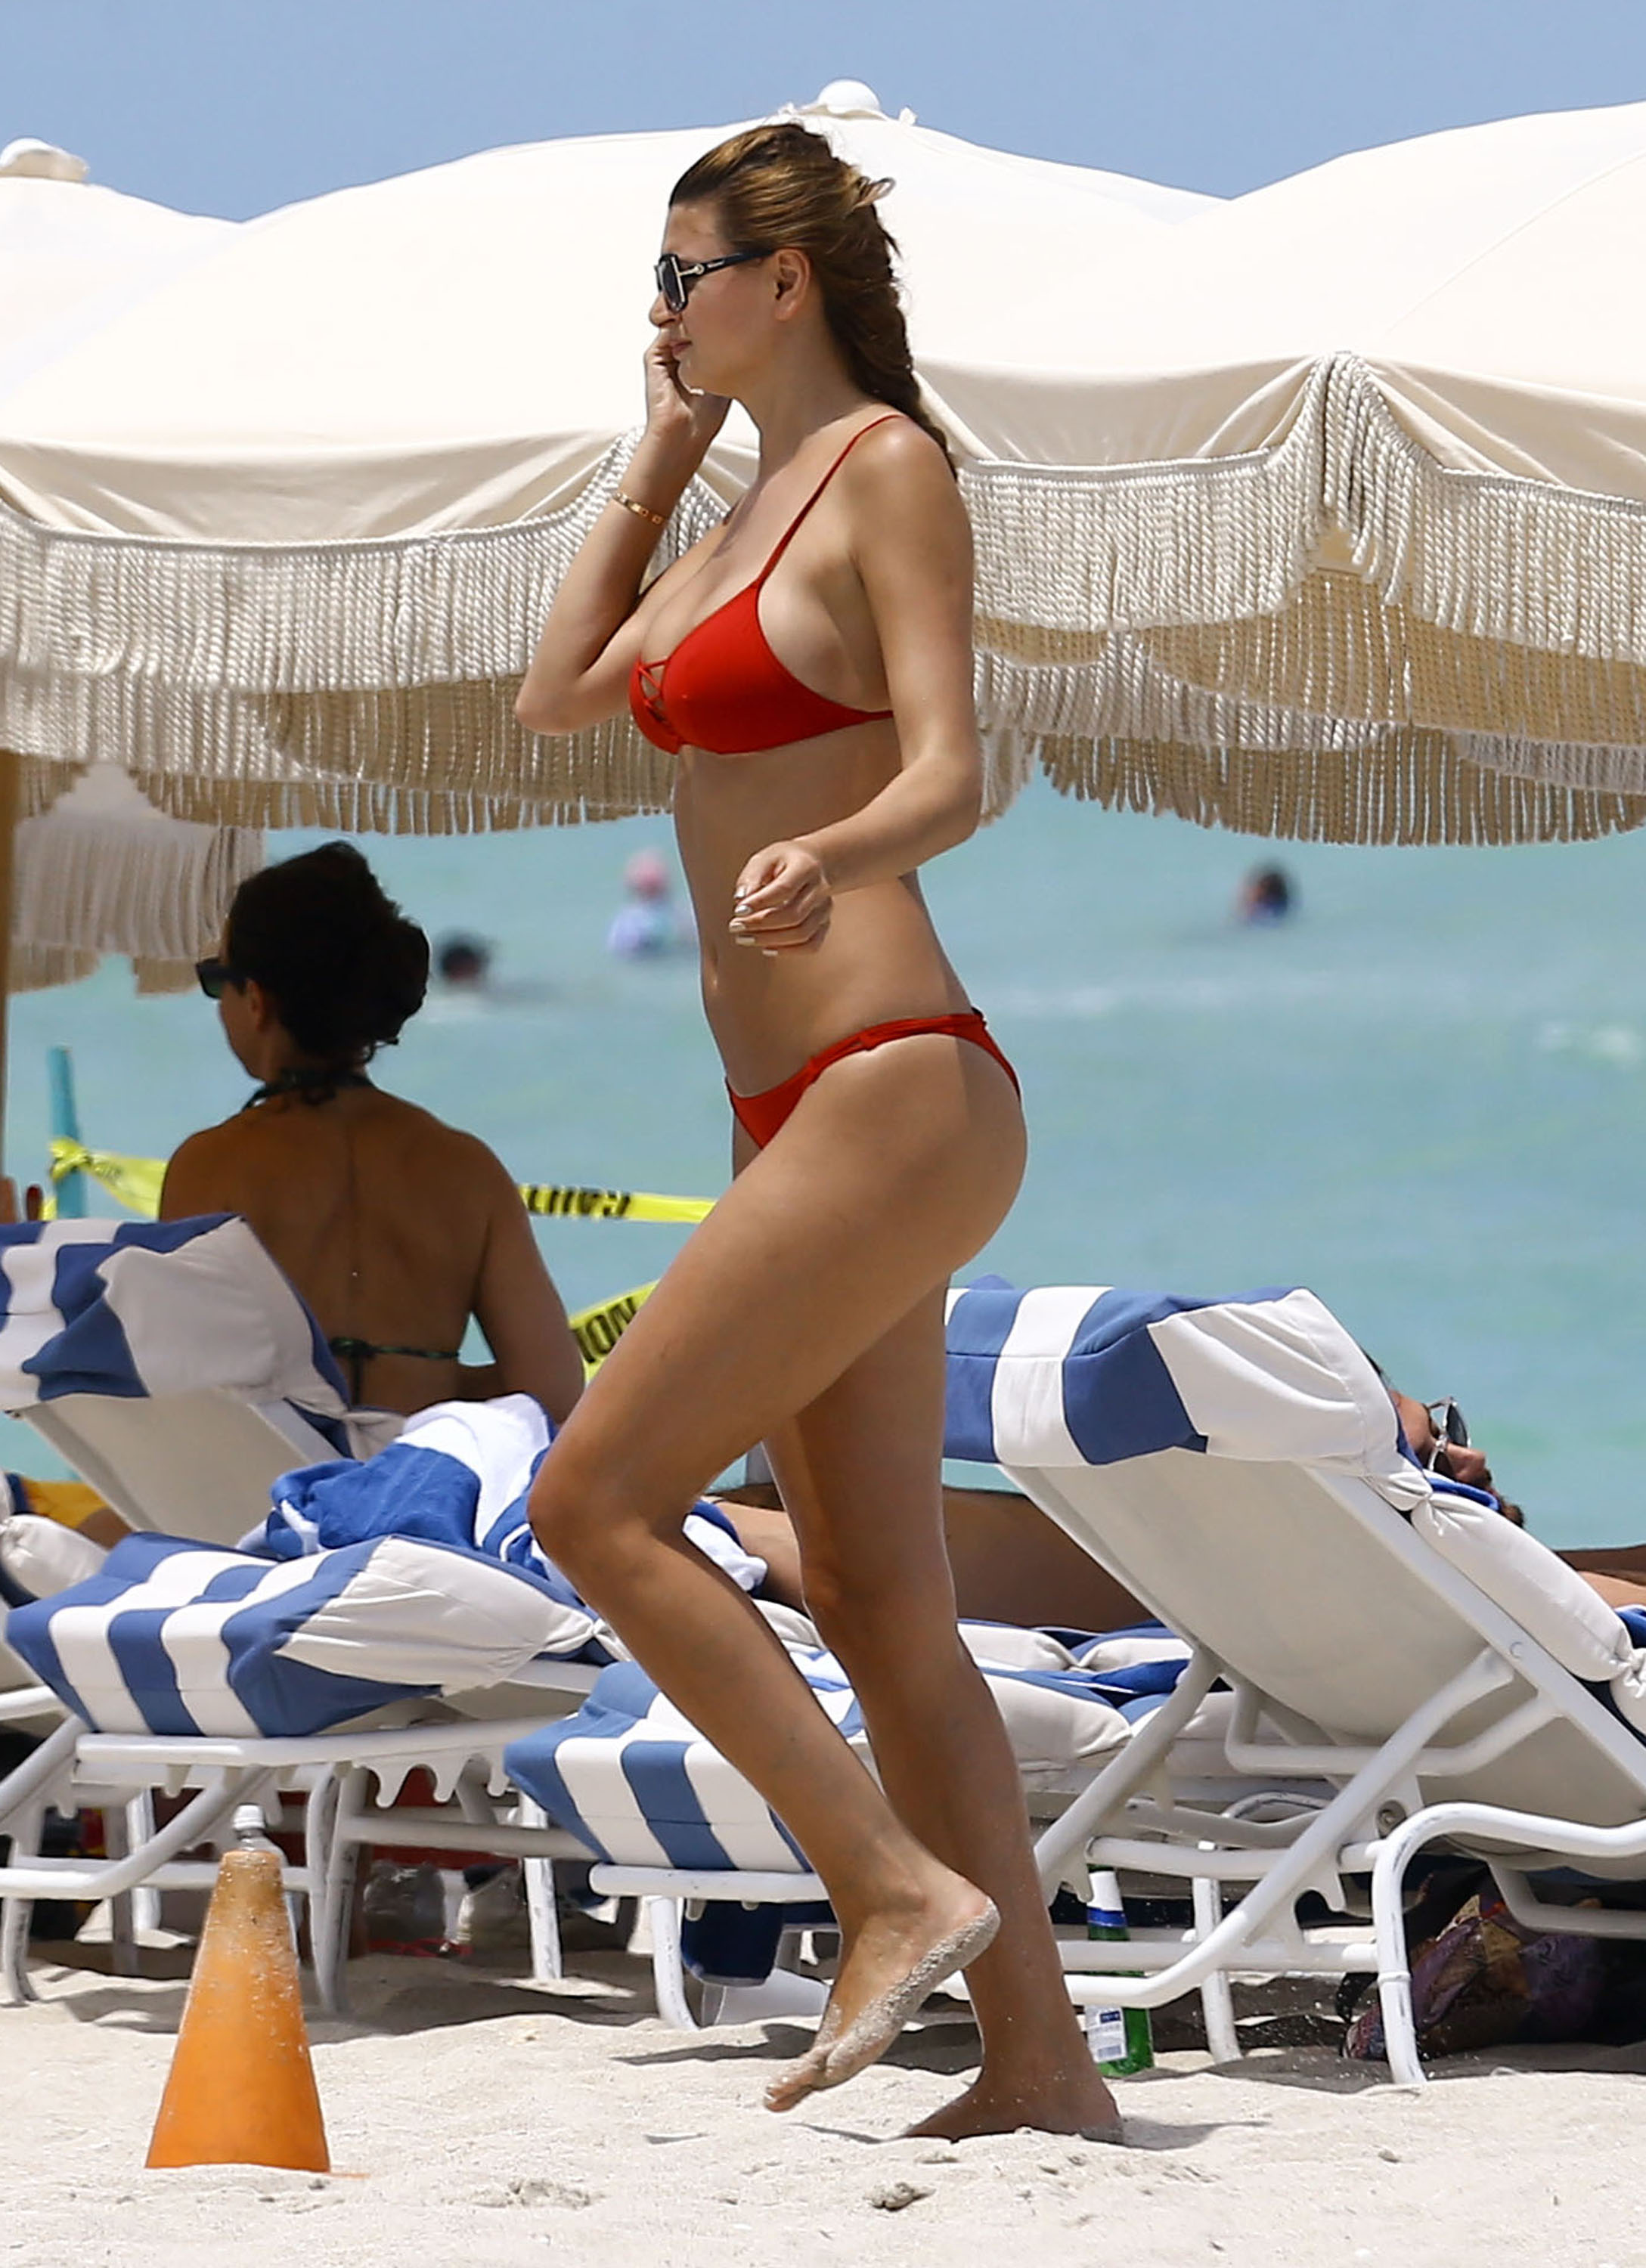 52118752 Romanian socialite Ramona Gabor enjoys a day on the beach in Miami, Florida on July 11, 2016. Ramona showed off her toned body in a red bikini. FameFlynet, Inc - Beverly Hills, CA, USA - +1 (310) 505-9876